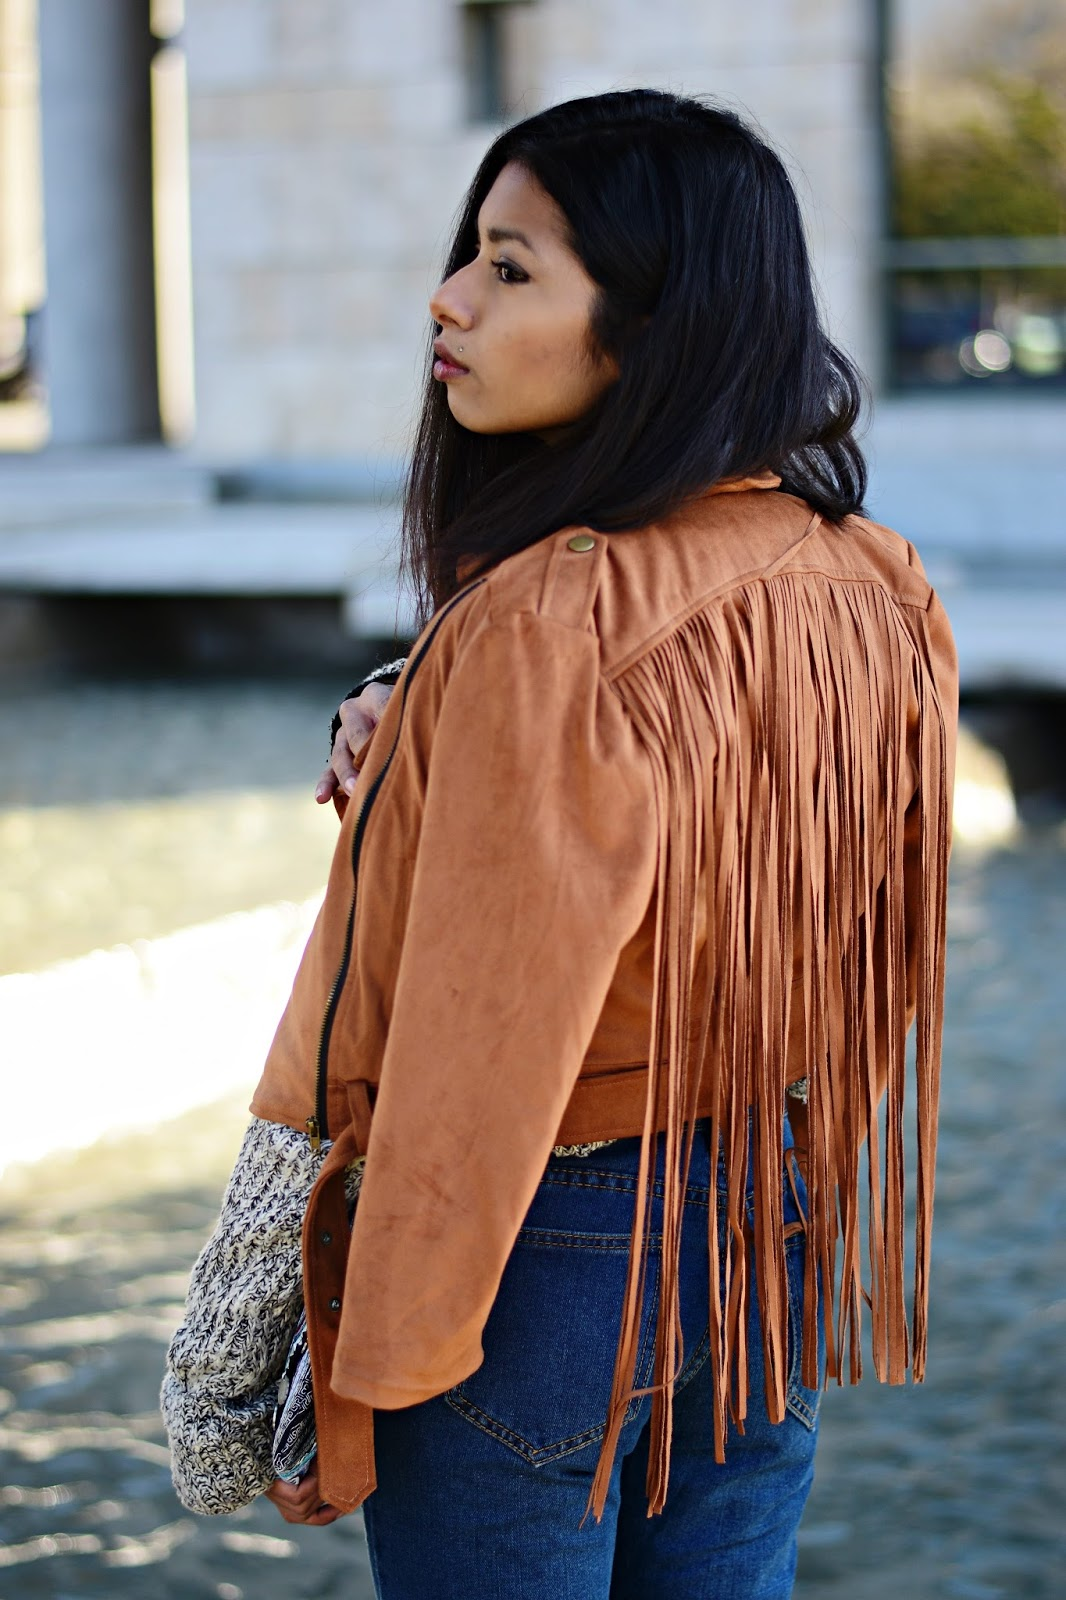 how to style Style Boho chic in winter